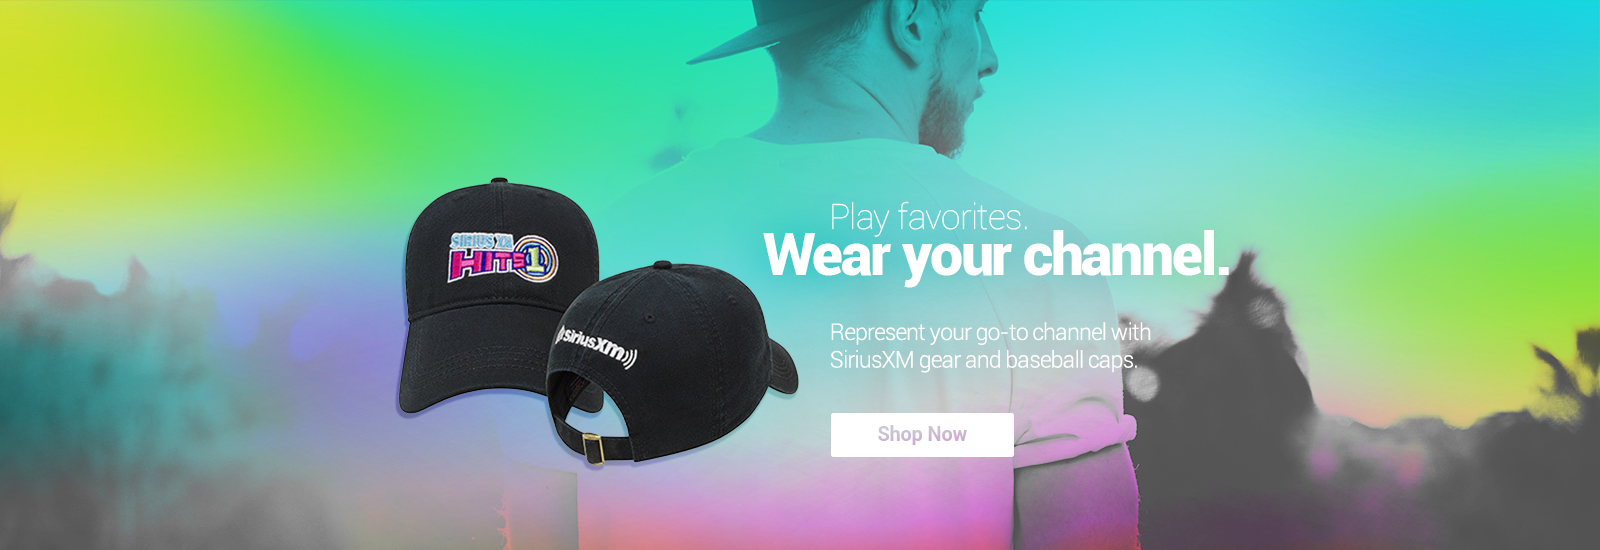 SiriusXM Baseball Caps Shop Now